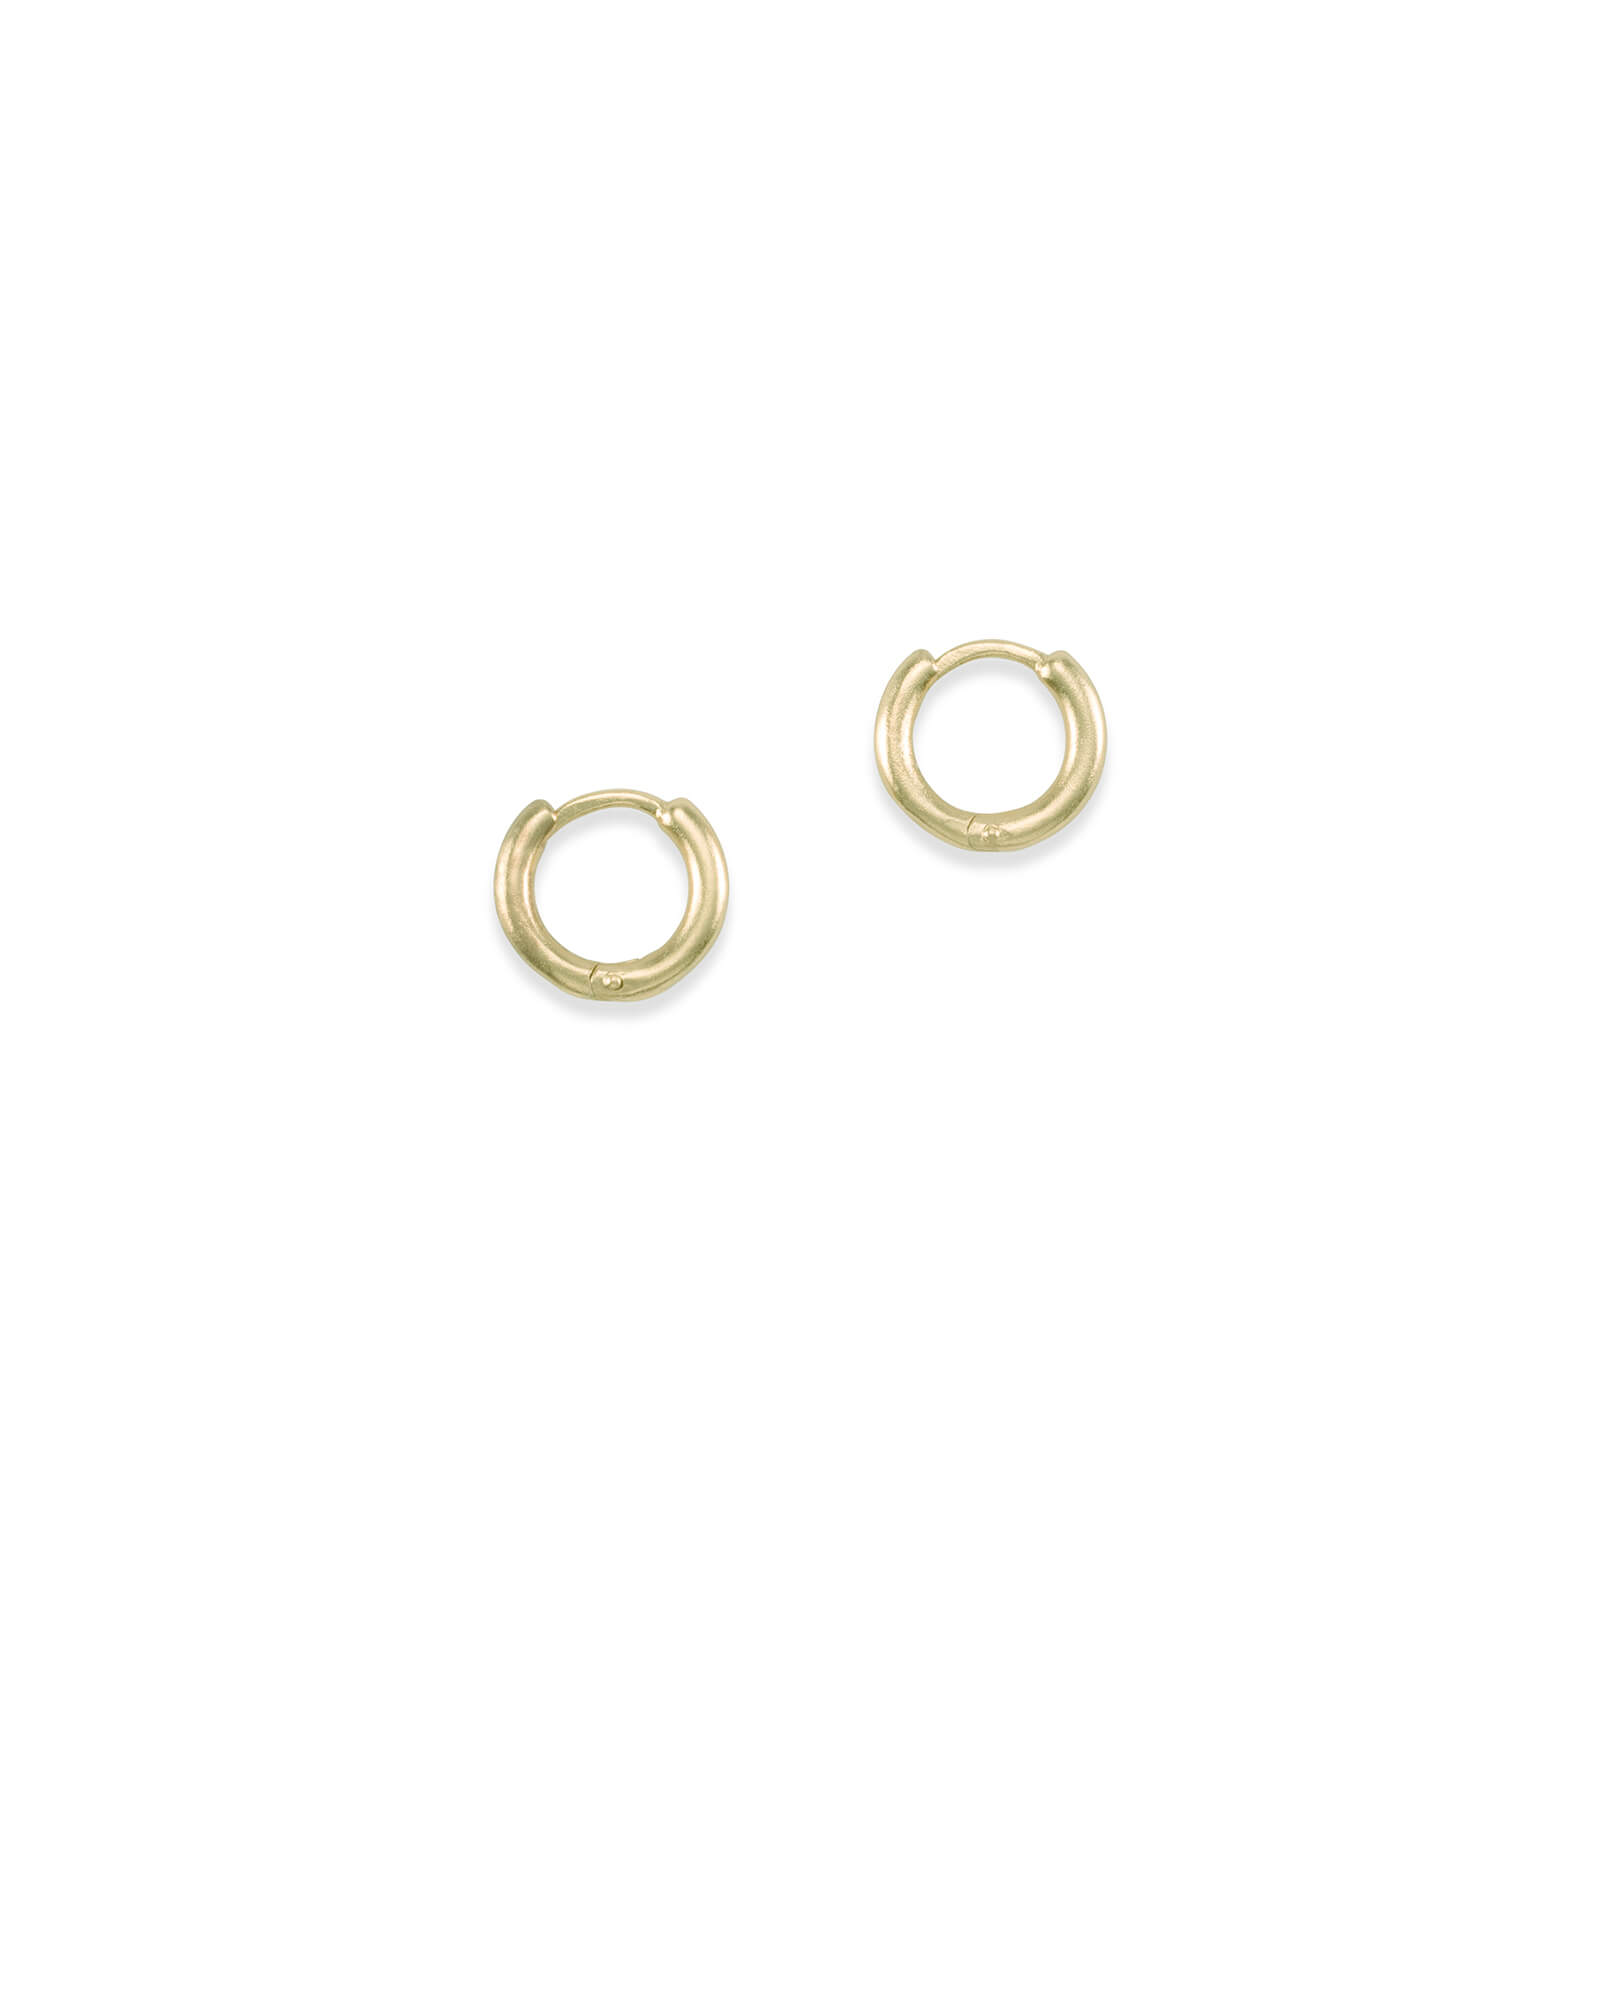 Huggie Hoop Earrings in Gold